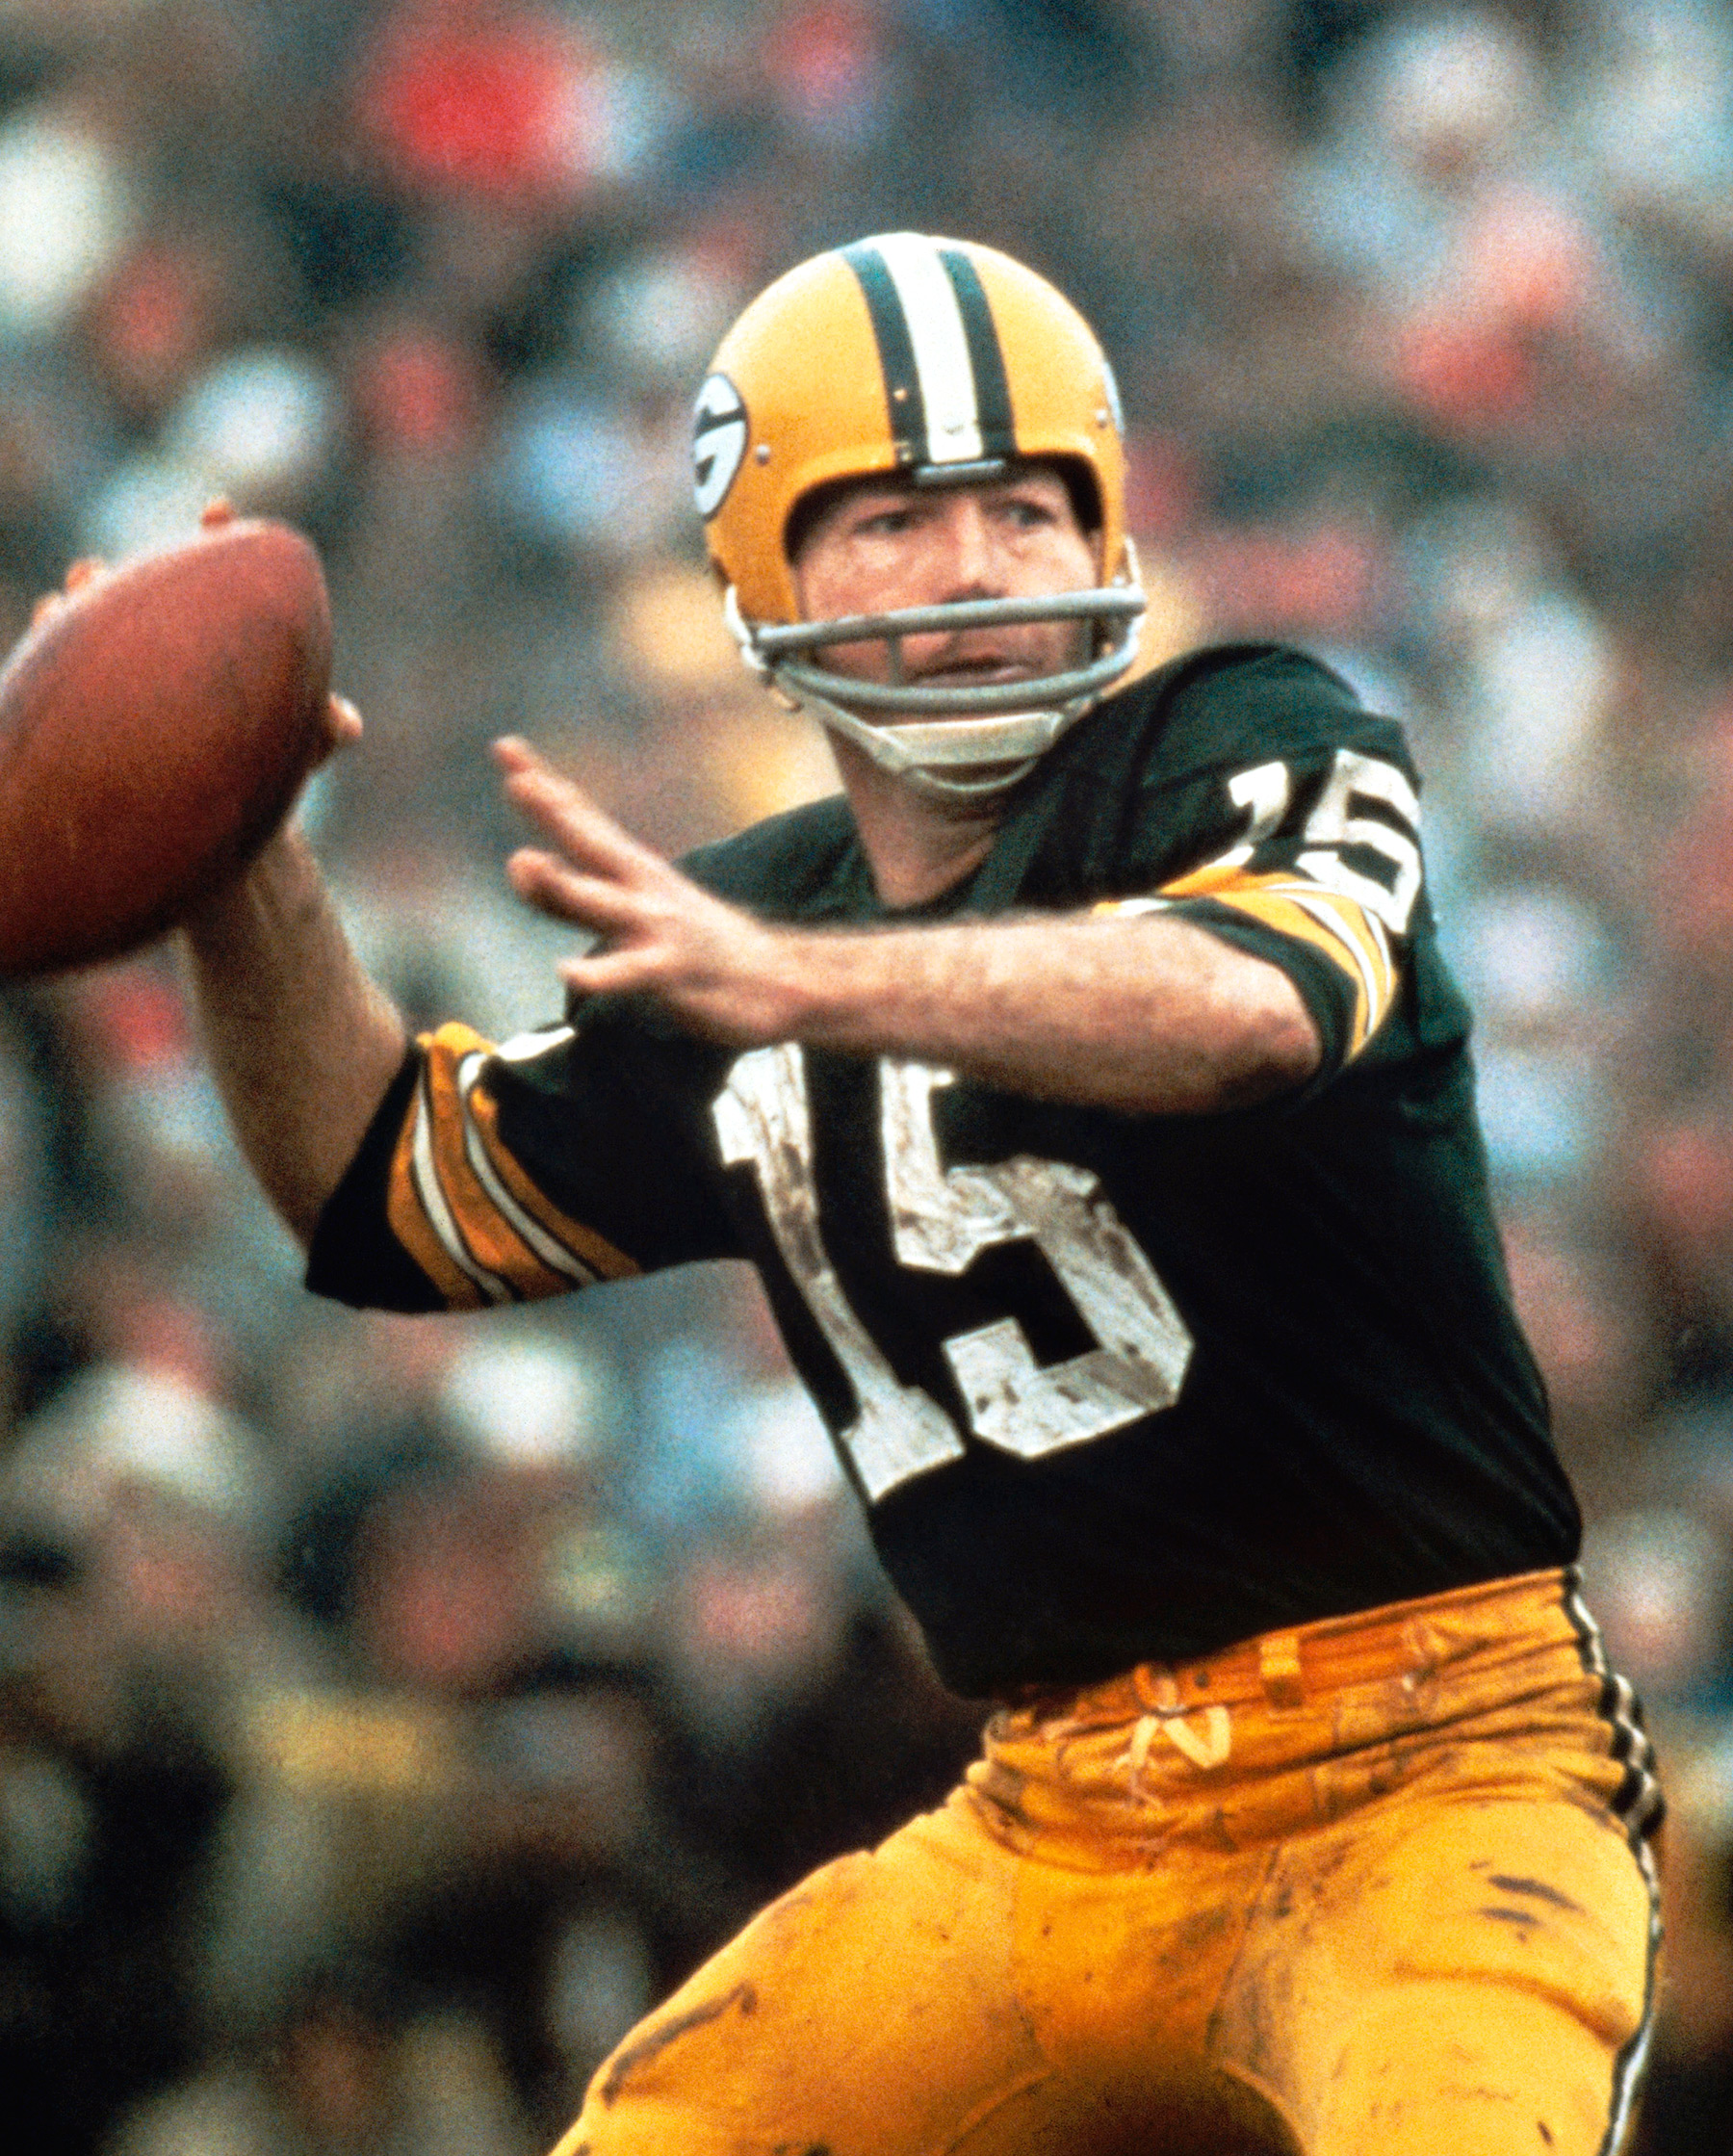 Hall of Fame Quaterback Bart Starr